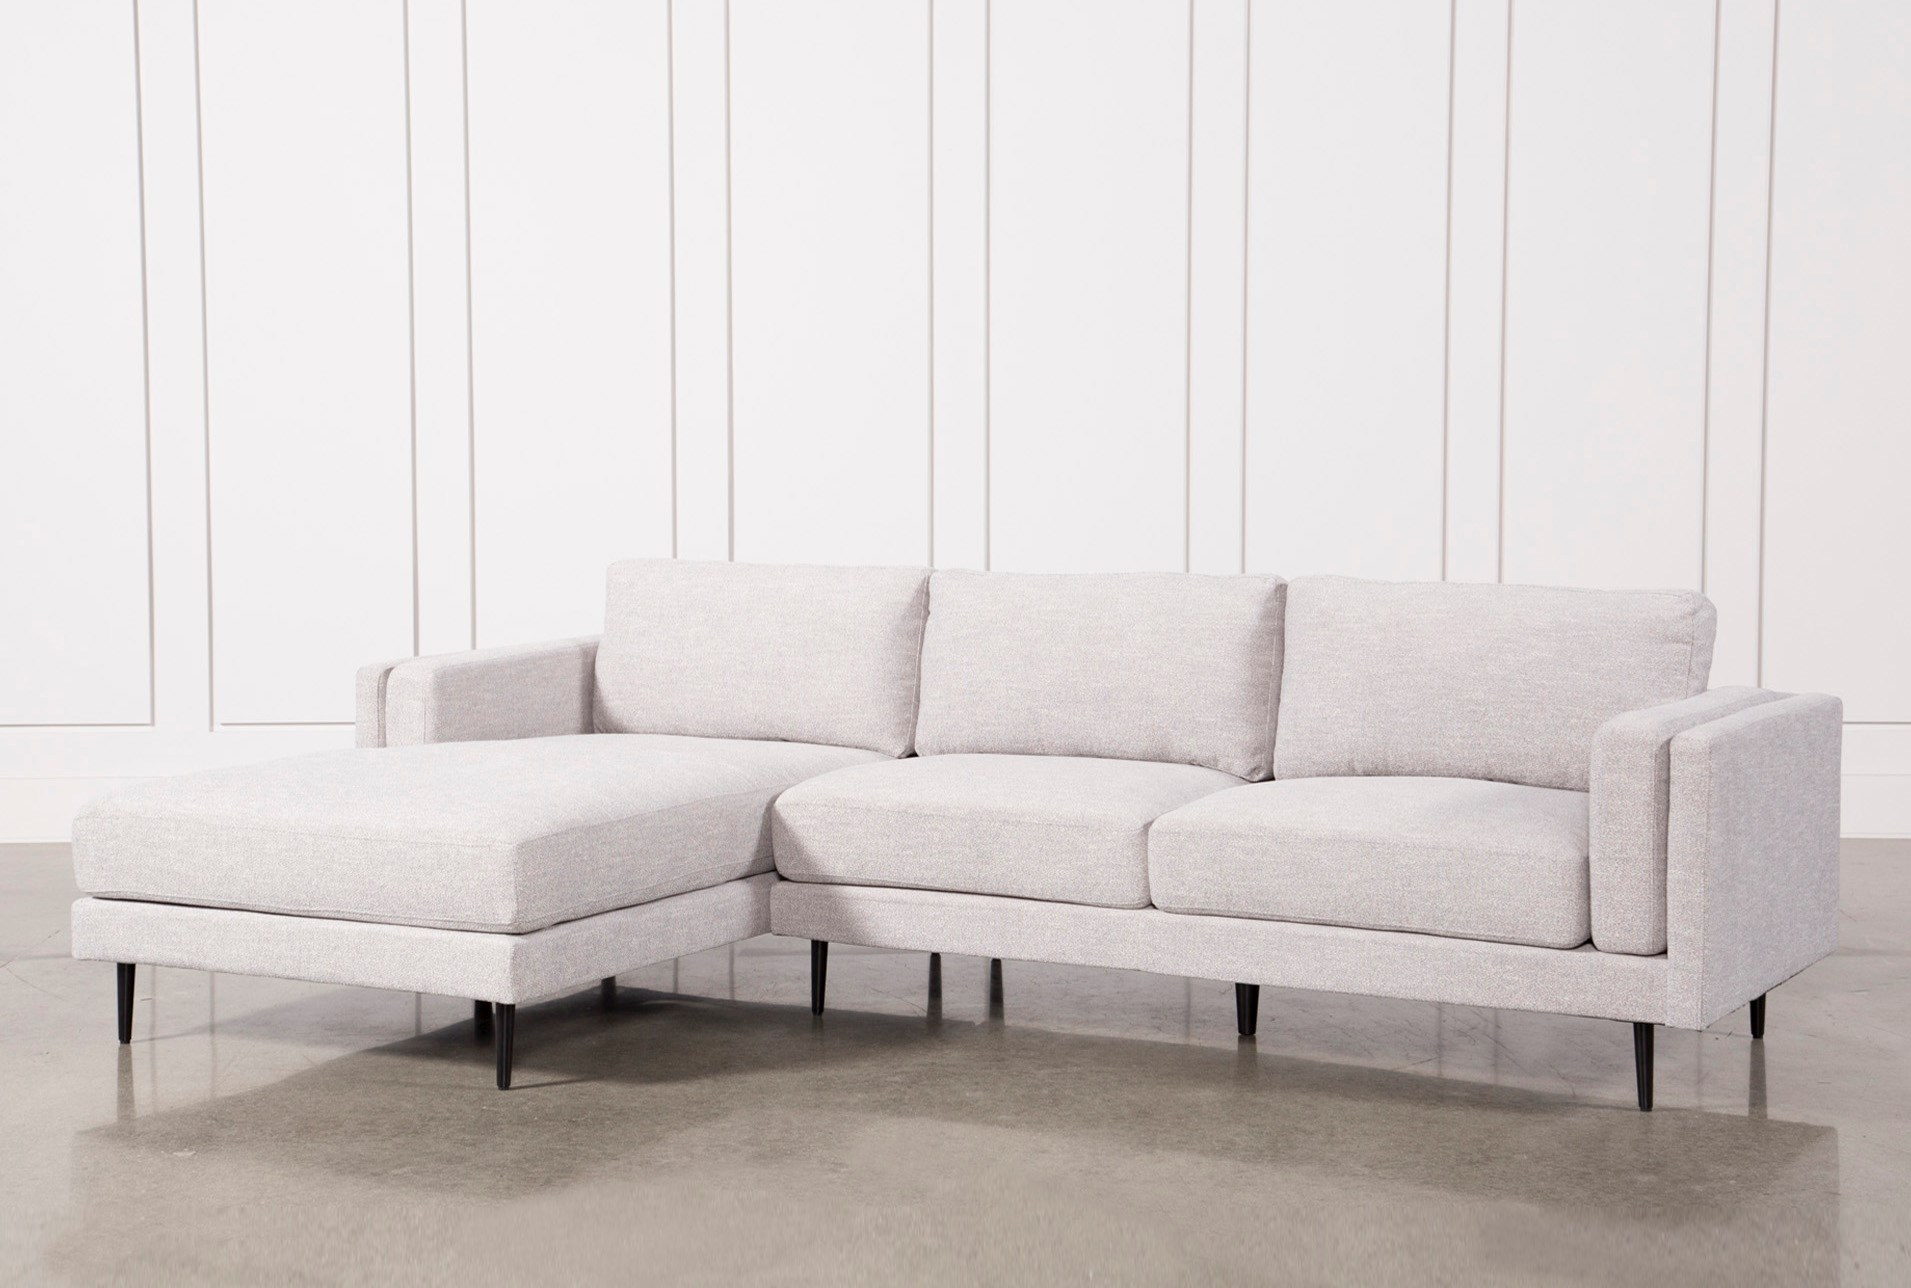 Aquarius Light Grey 2 Piece Sectional W Laf Chaise Qty 1 Has Been Successfully Added To Your Cart